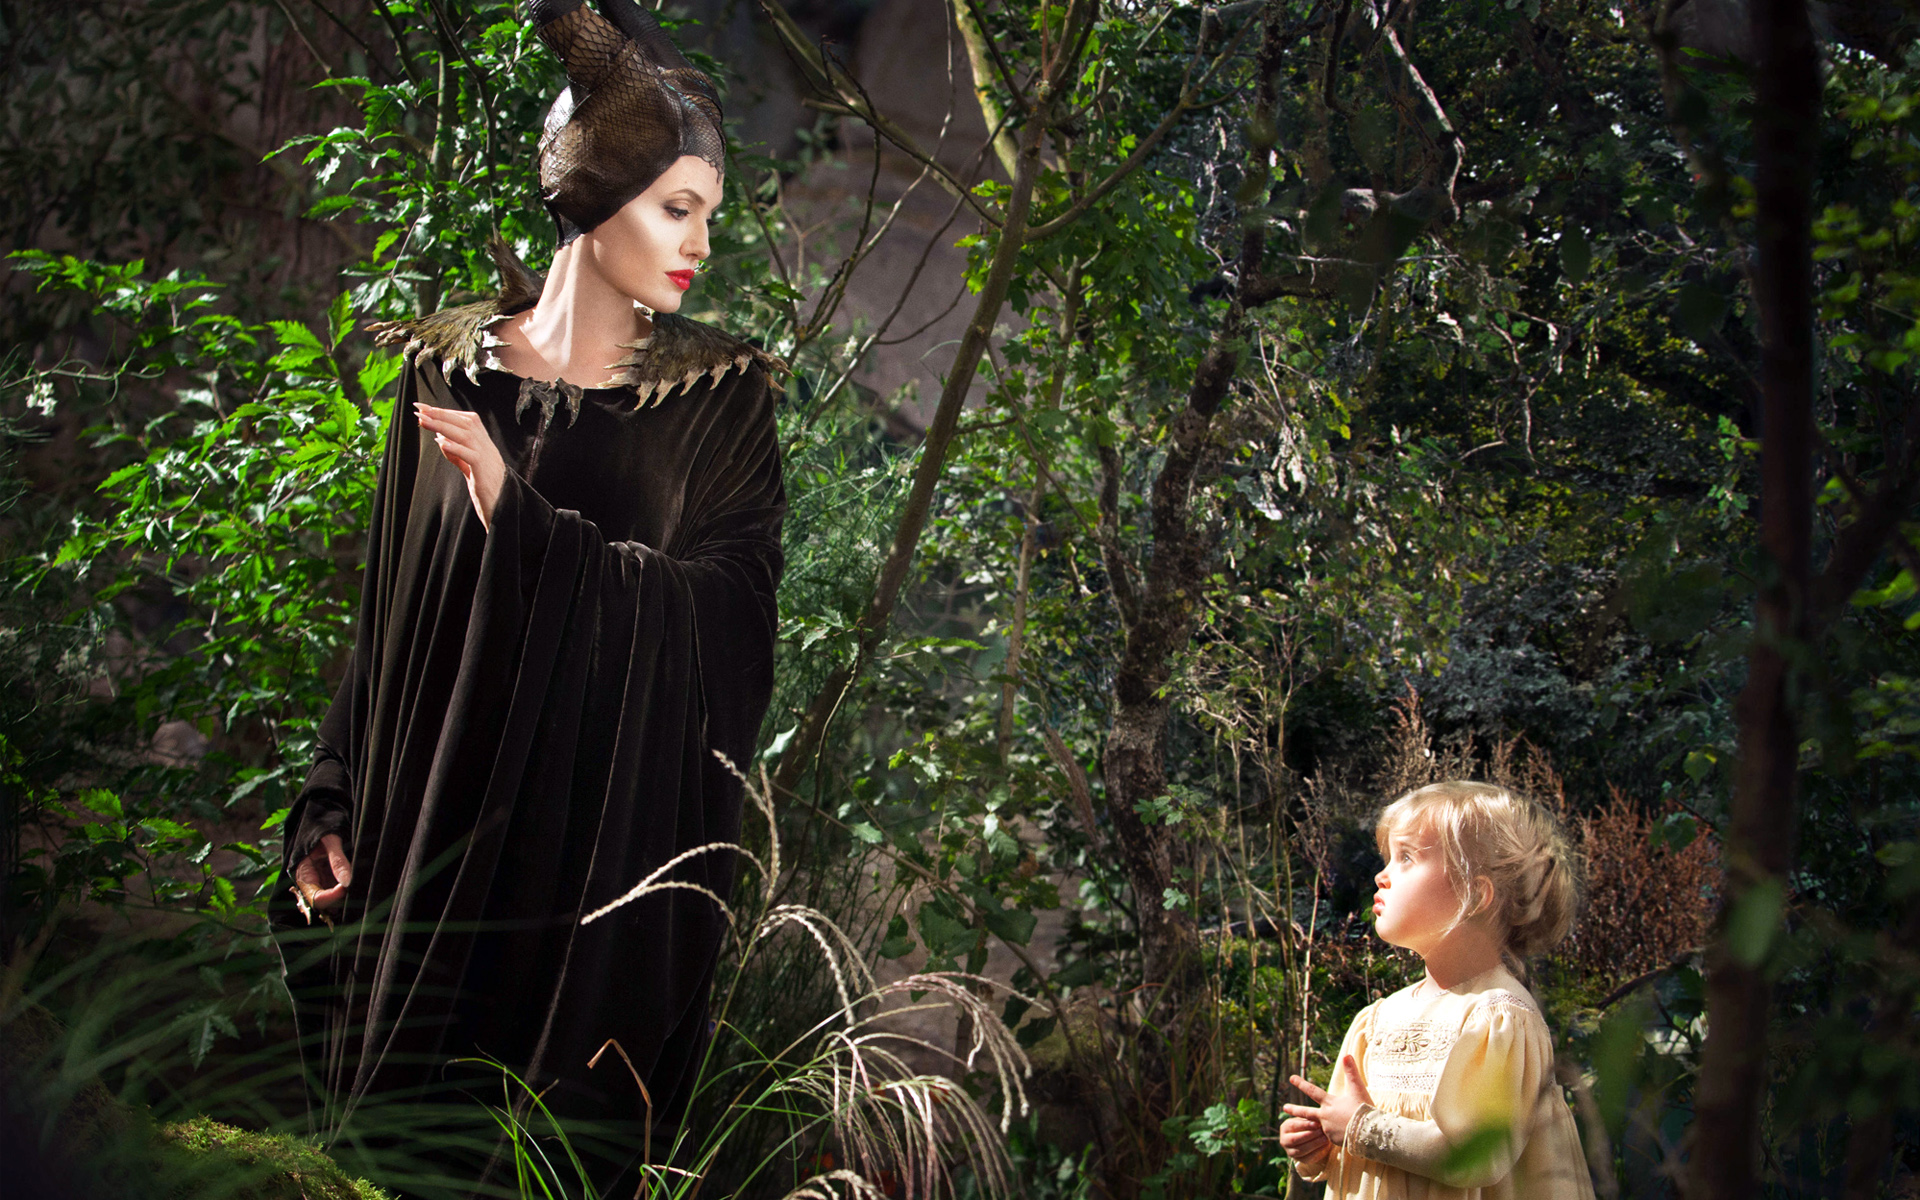 Maleficent Scene 2977.59 Kb